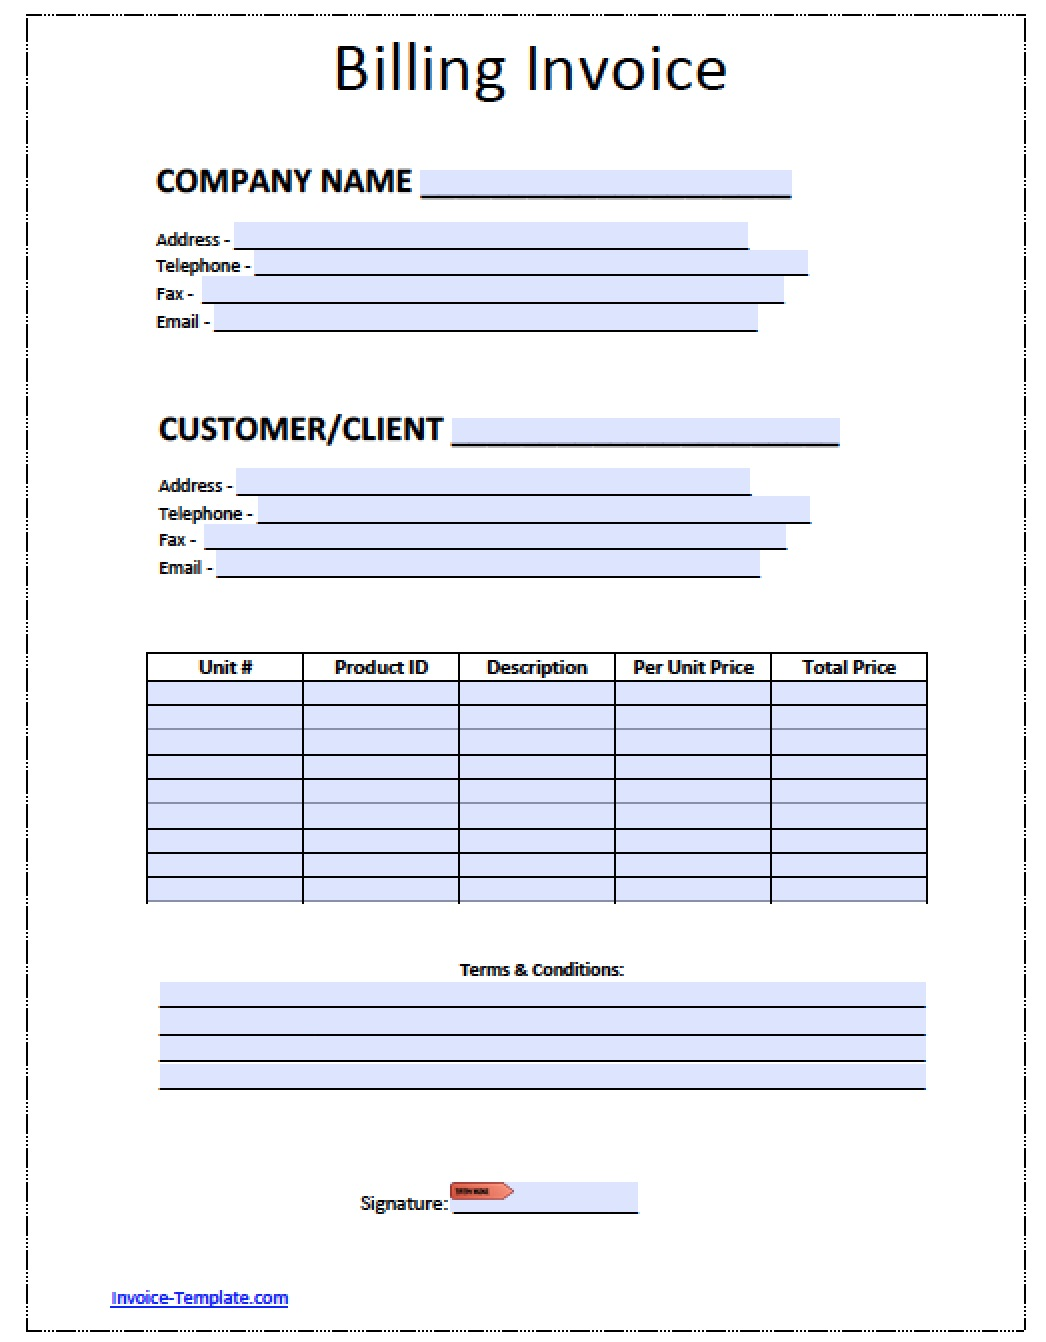 Centralasianshepherdus  Sweet Billing Invoice Invoices Faq U Cloudflare Support Billing  With Fair Free Billing Invoice Template  Excel  Pdf  Word Doc  Billing With Delectable Hospital Invoice Template Also Print Blank Invoice In Addition Xin Invoice And Basware Invoice Processing As Well As Excel Invoice Templates Free Additionally Music Invoice From Happytomco With Centralasianshepherdus  Fair Billing Invoice Invoices Faq U Cloudflare Support Billing  With Delectable Free Billing Invoice Template  Excel  Pdf  Word Doc  Billing And Sweet Hospital Invoice Template Also Print Blank Invoice In Addition Xin Invoice From Happytomco